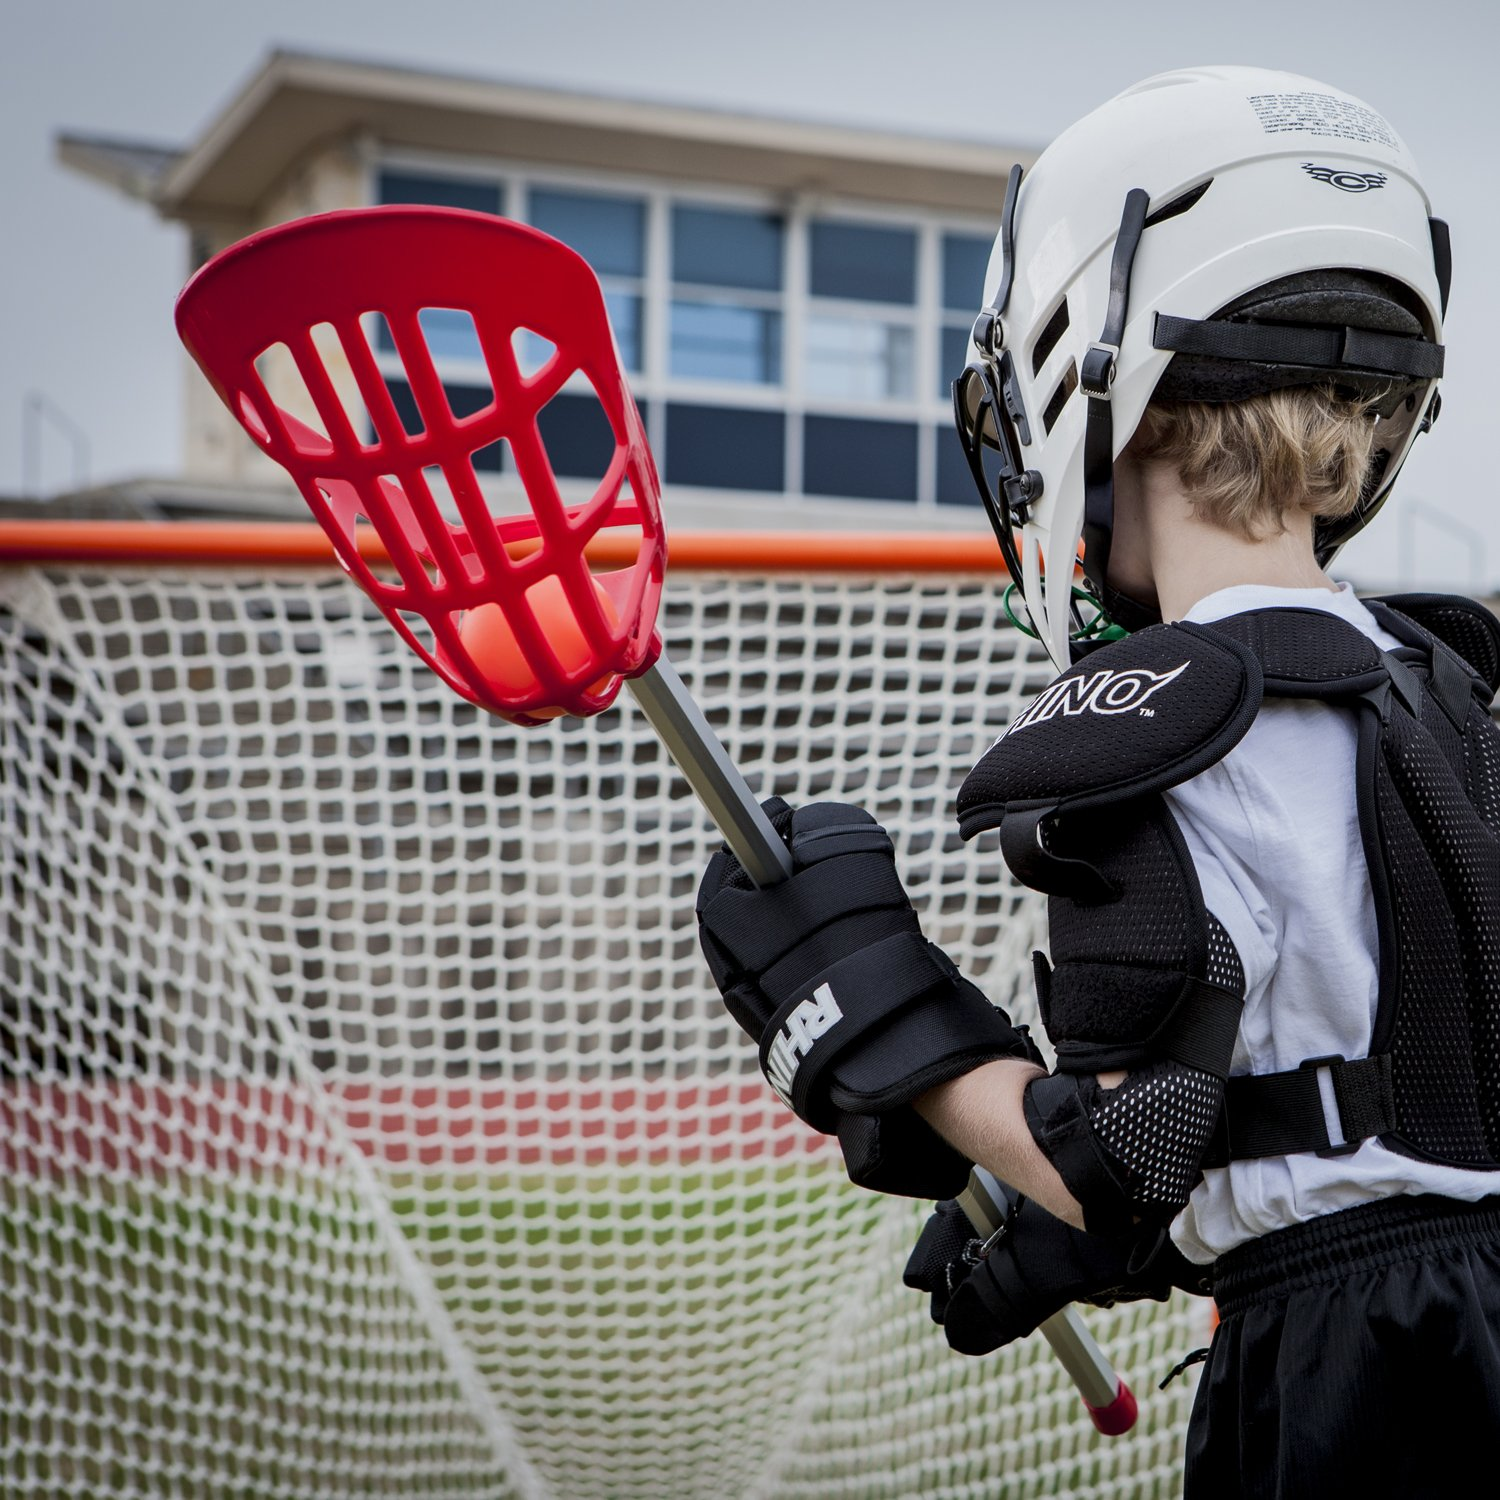 Champion Sports Soft Lacrosse Set: Training Equipment for Boys, Girls, Kids, Youth and Amateur Athletes - 12 Aluminum Sticks and 6 Vinyl Balls for Indoor Outdoor Use by Champion Sports (Image #6)